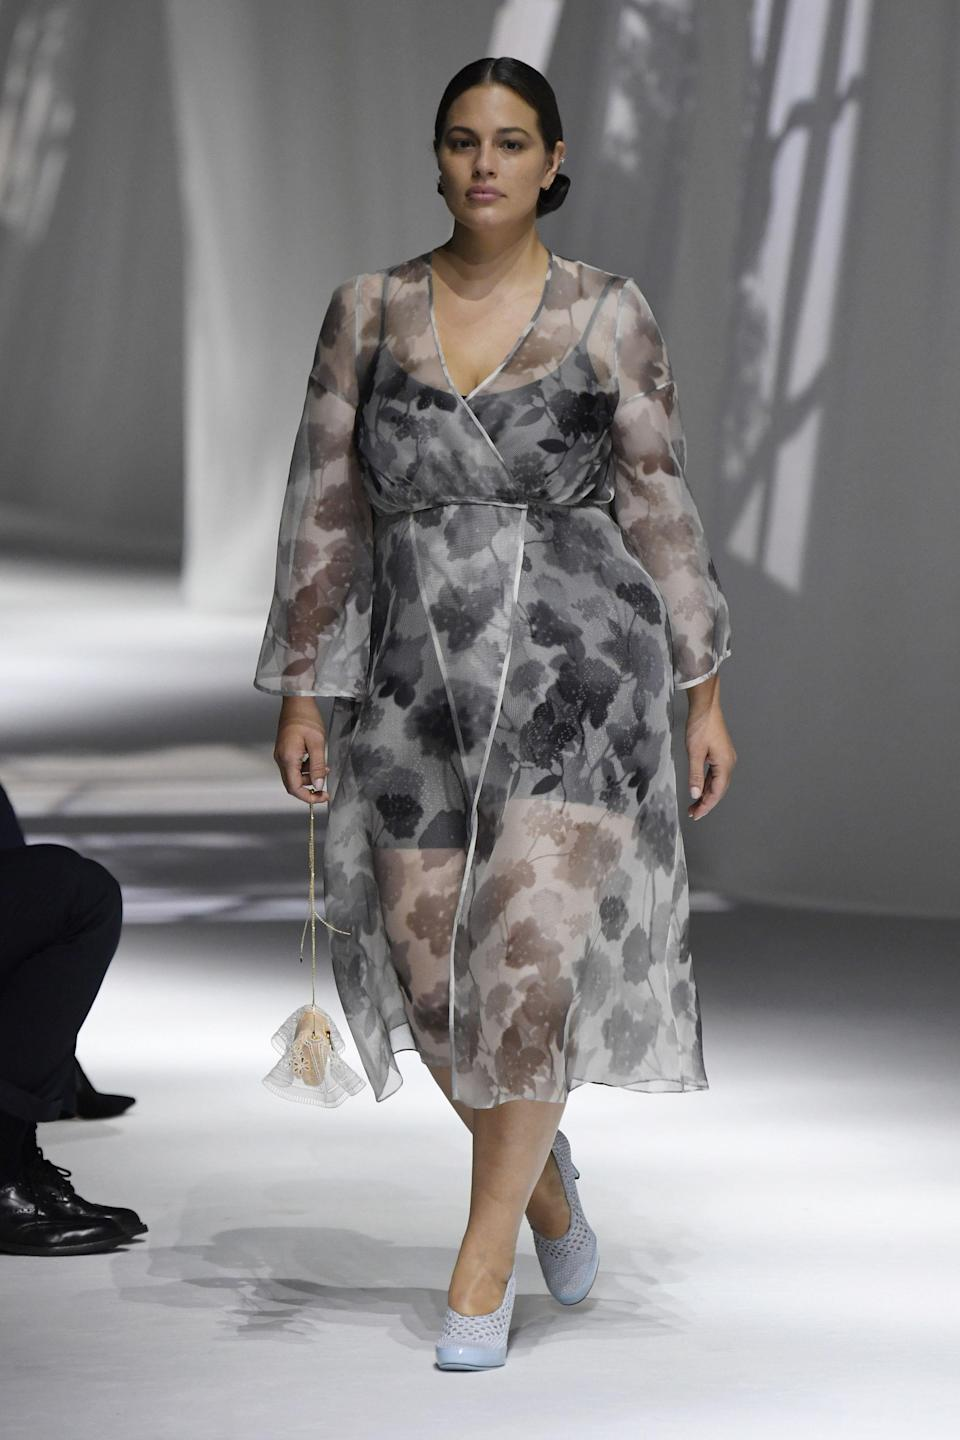 """<p>""""Acknowledging the gravity of a moment, clothes tell stories of the rigour of Italian craft and the emotion of our universal experience,"""" stated Fendi's press release following their runway show. As a fashion house with a storied history that spans generations, the meaning of family is reimagined in their spring-summer collection. The brand honed in on its heritage and craftsmanship, something they spent ample time contemplating during COVID-19. </p><p>This reflection took direct interpretation in the form of a clean color palette, flaxen linen, and crisp white cotton nightgowns, contrasted by playful notes of vibrant cerulean and fuchsia. Stay-at-home orders made its most obvious appearance in the form of comforter duvets reworked as vests or jackets and dragged across the floor by model Paloma Elsesser. Speaking of models, Fendi cast actual families, featuring mothers, fathers, sisters and sons. Even the accessories were a nod to time in quarantine. Socks are worn with slippers like a paternal figure would, the plastic market bag is reinterpreted in laser-cut PVC, and a miniature baguette is covered in grandma's doily. </p><p>Fendi's runway show was the first in-person presentation during MFW, and speaks volumes to what Italy and the industry has endured. A quiet family home is a welcome respite. </p><p><em>Click through to see every look from Fendi's spring-summer 2021 runway show. </em><br></p>"""